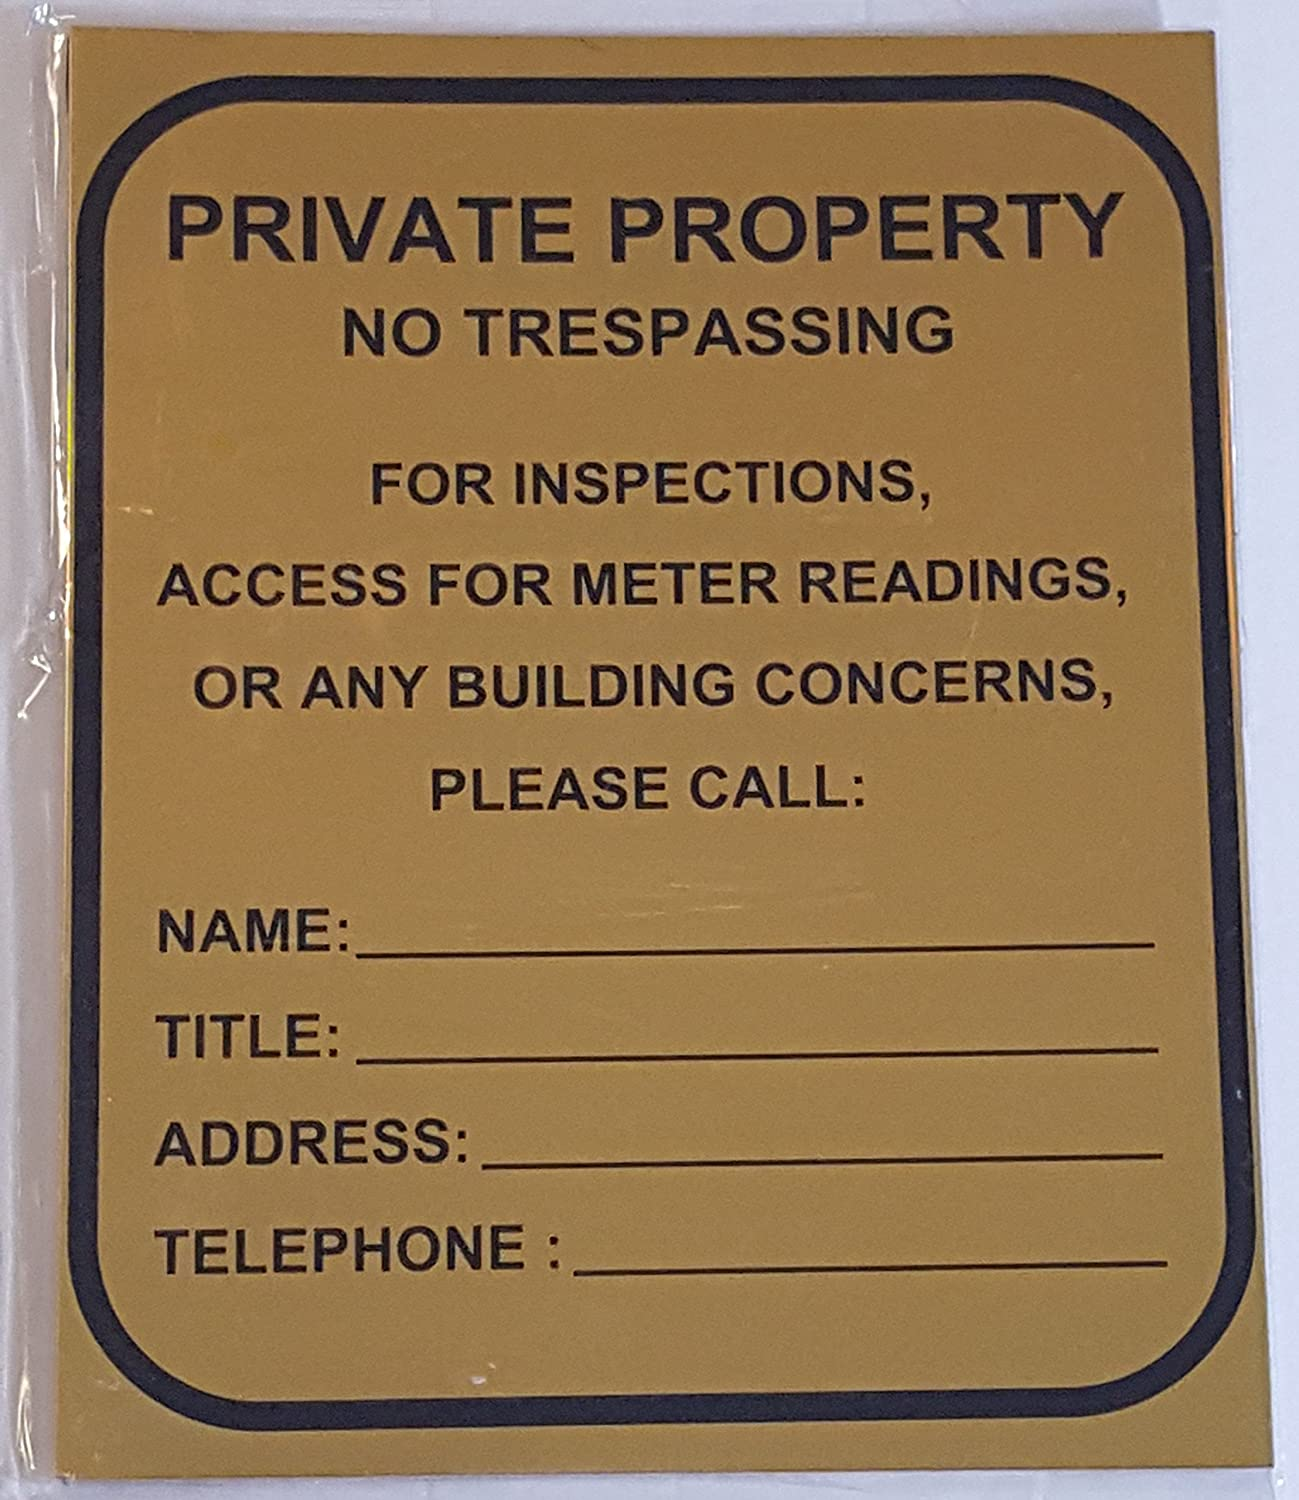 Private Property - NO TRESPASSING Super intense SALE for Access Meter Inspection 5% OFF